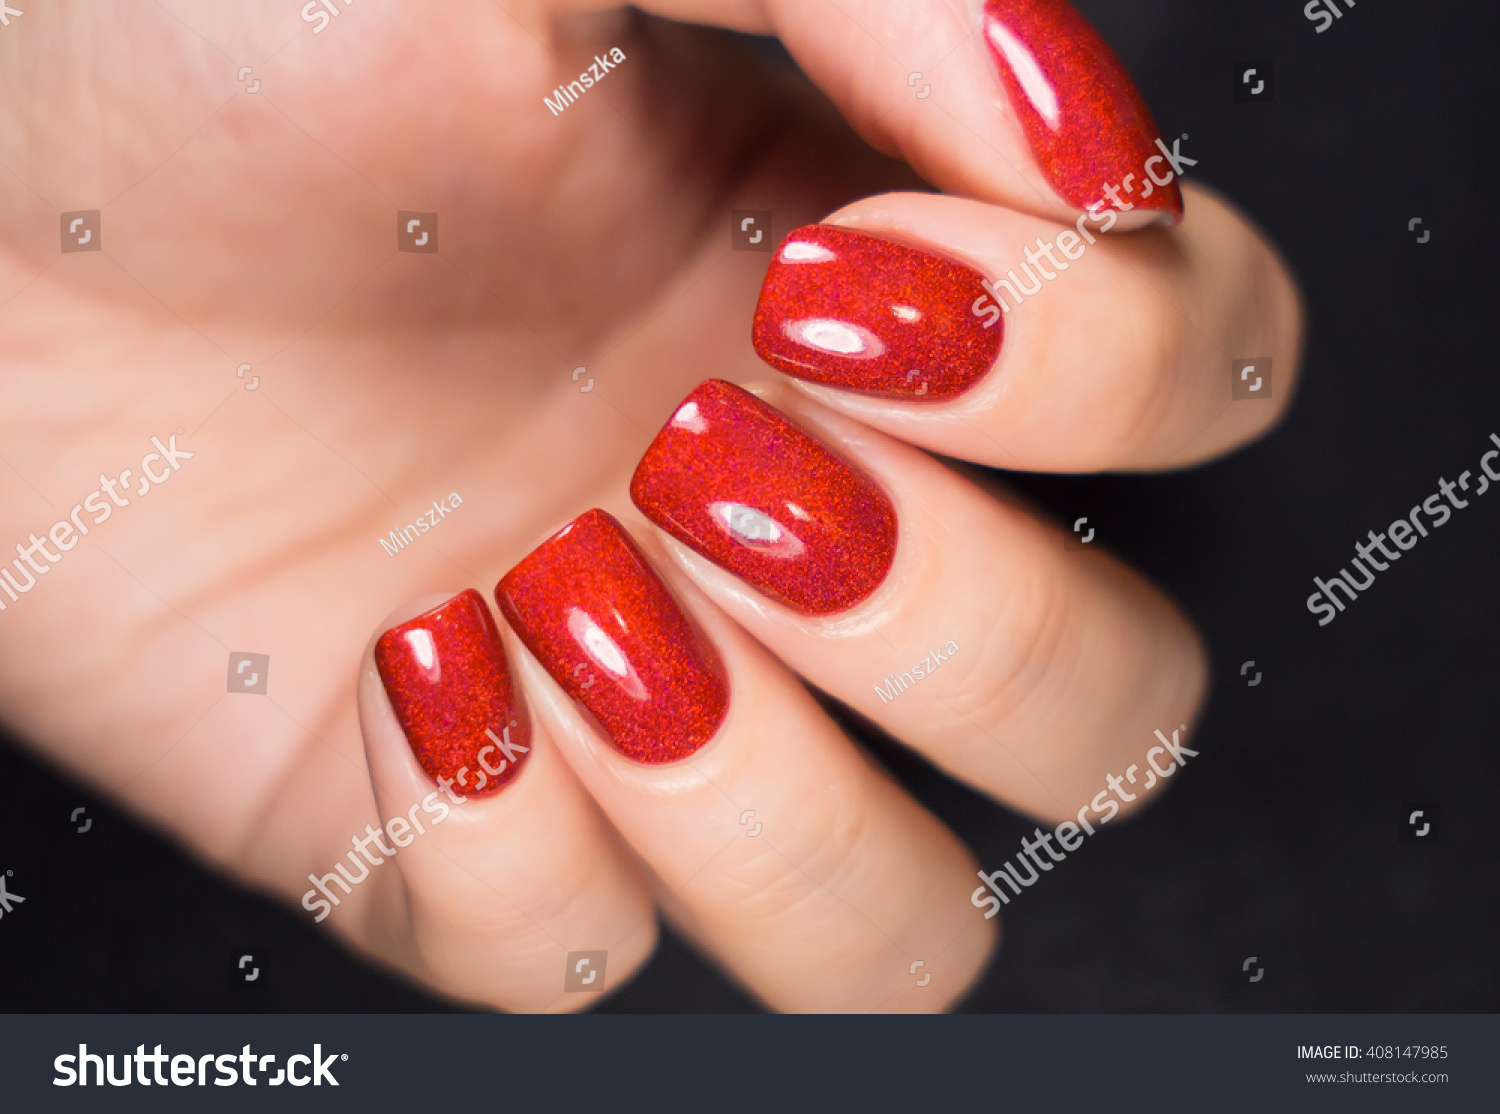 Woman with beautiful manicured red fingernails gracefully crossing her hands to display them to the viewer on a white background in a fashion glamour and beauty concept